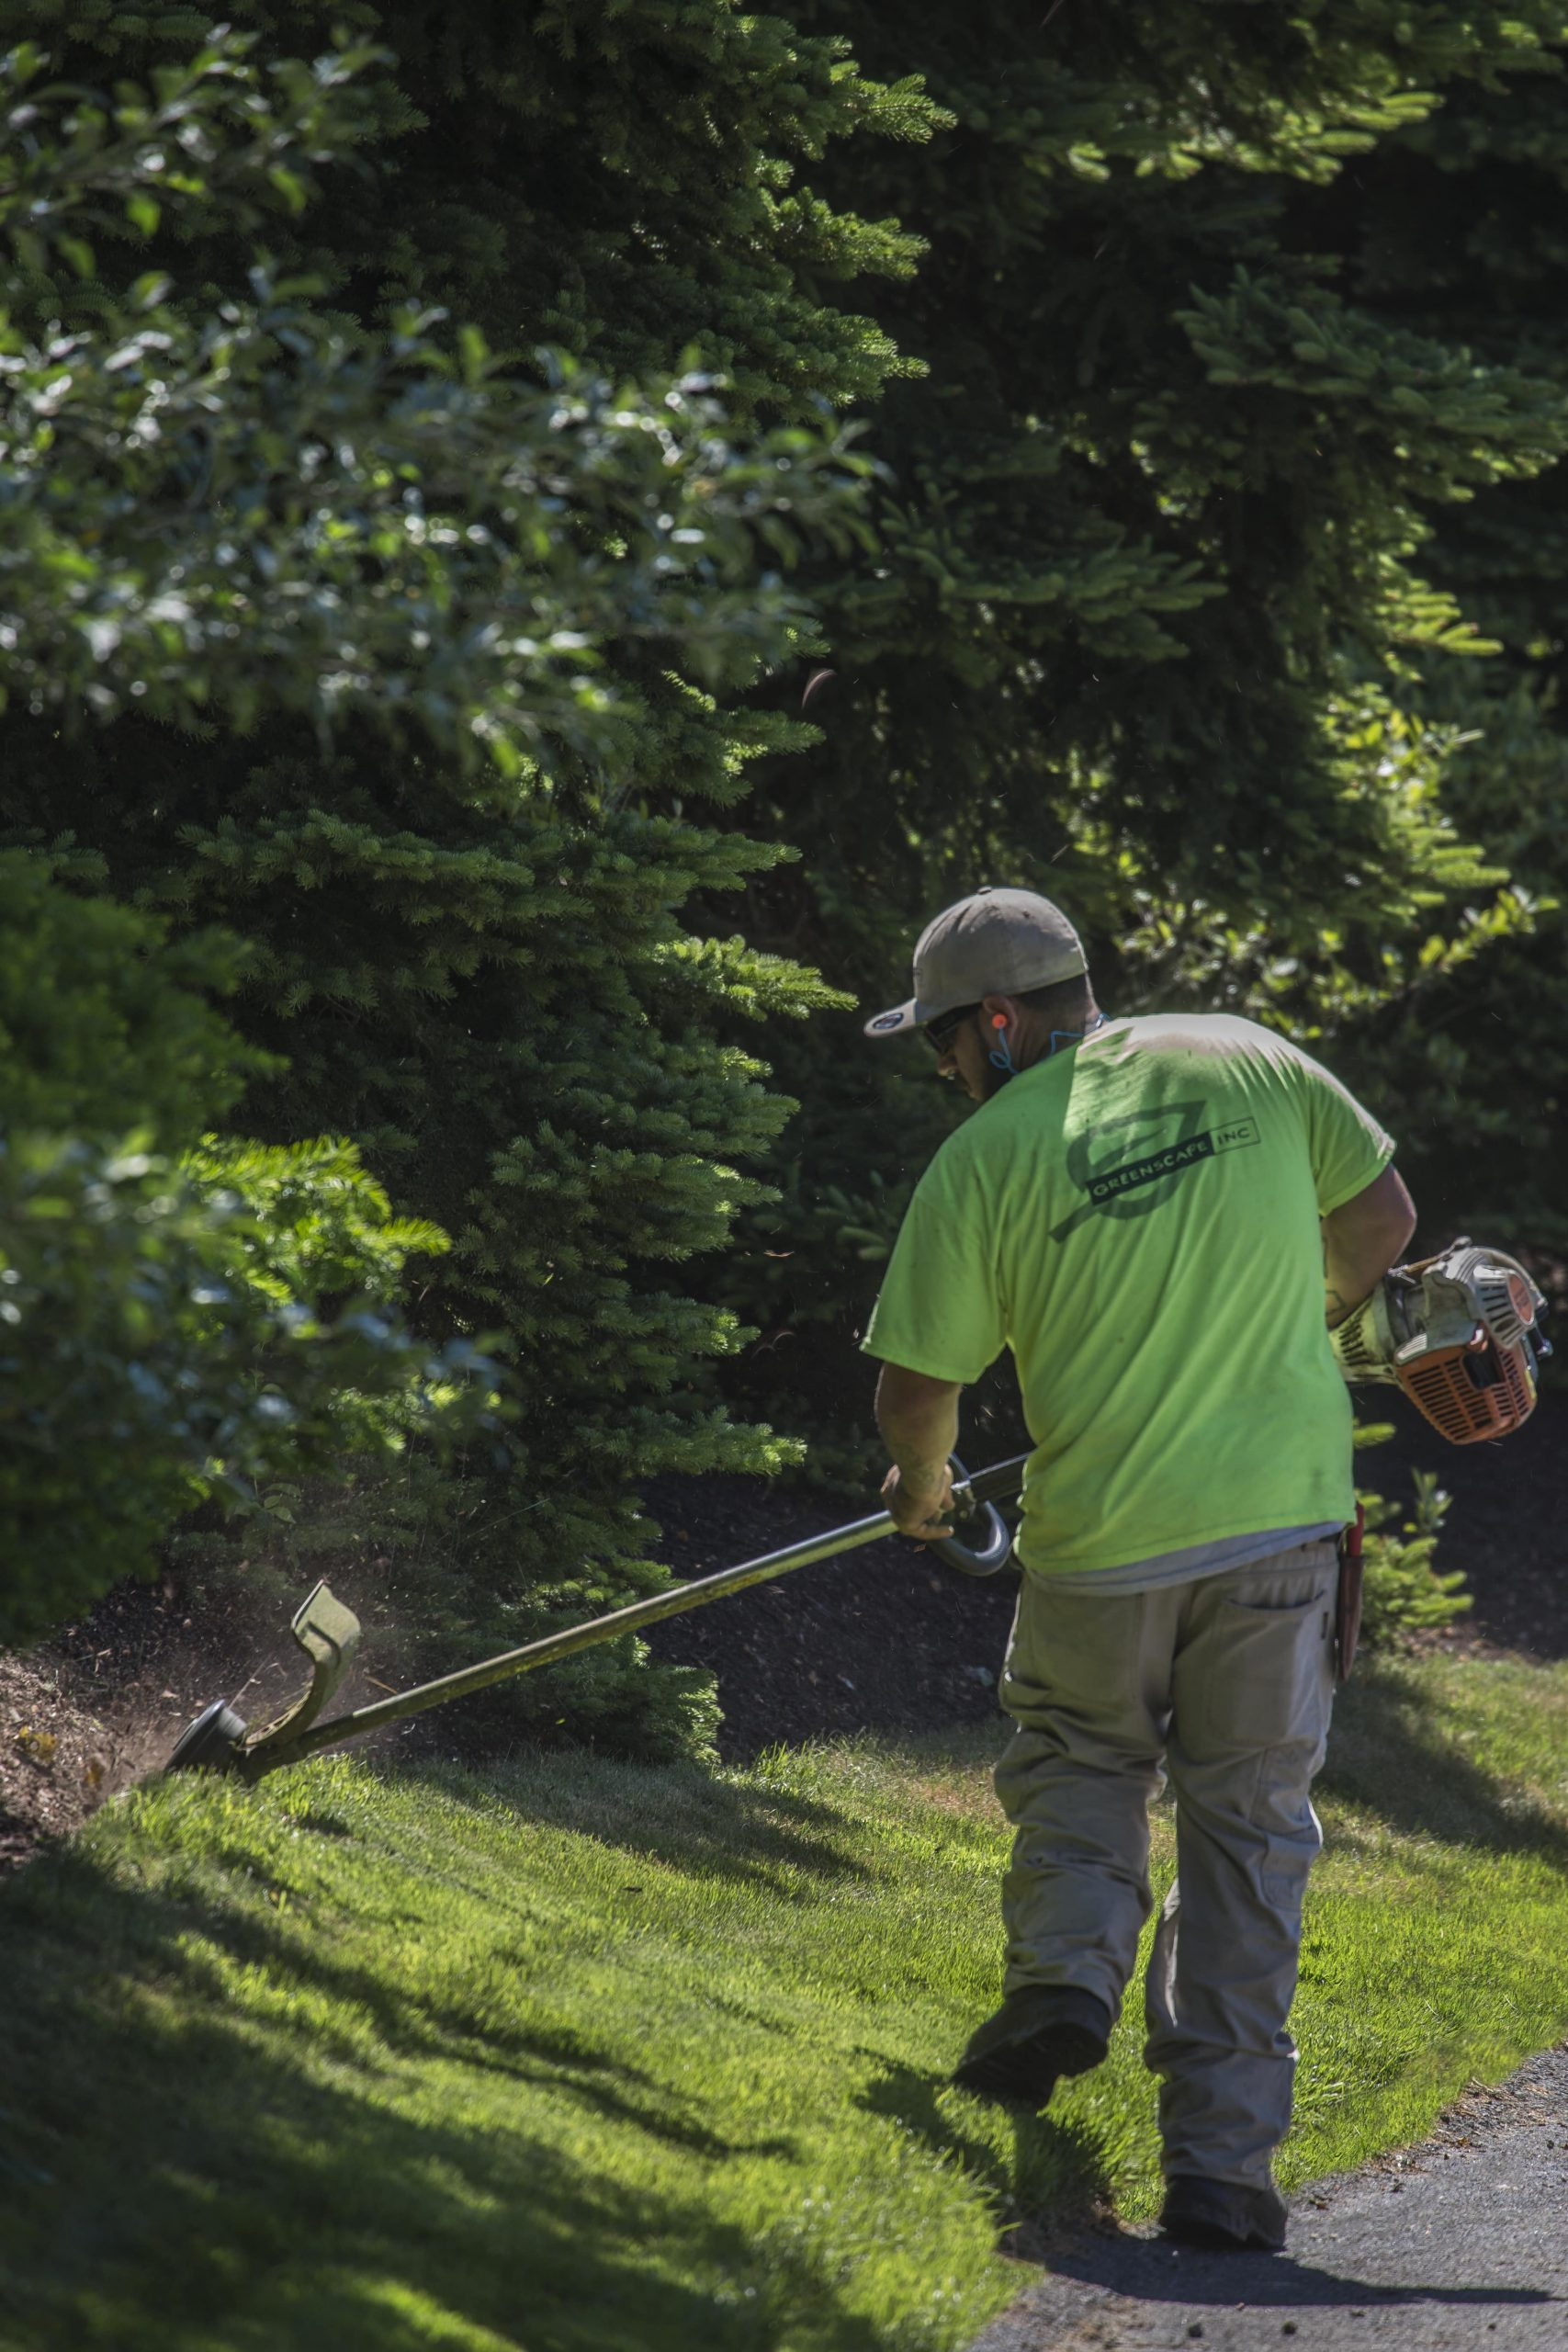 Greenscape employee weed-whacking at Bourne Condos.